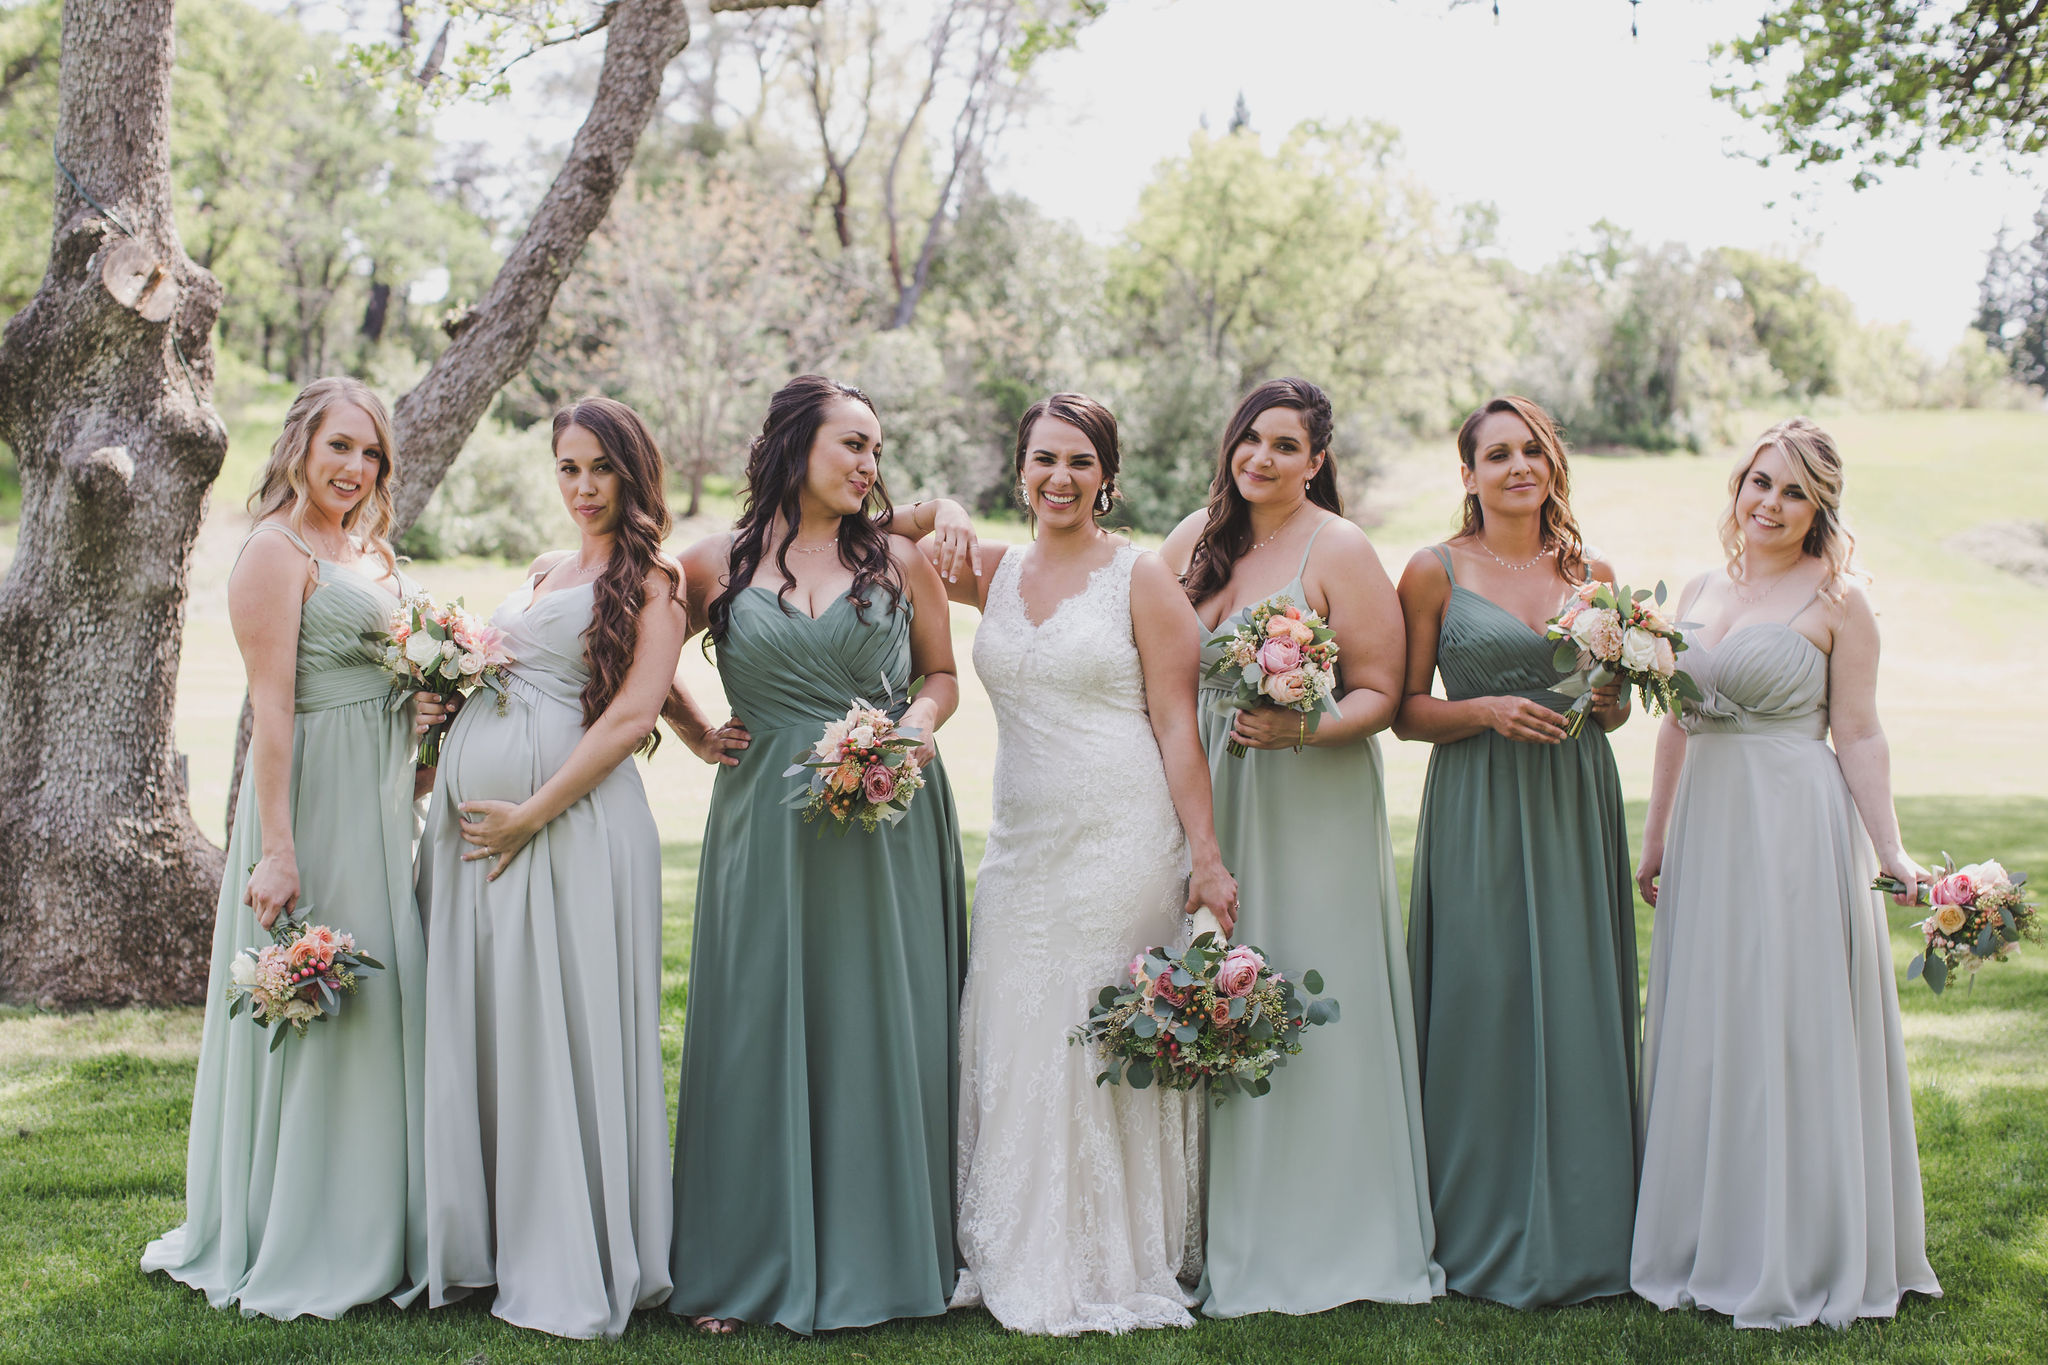 AVH_Photography_canyon_oaks_wedding_0076.jpg